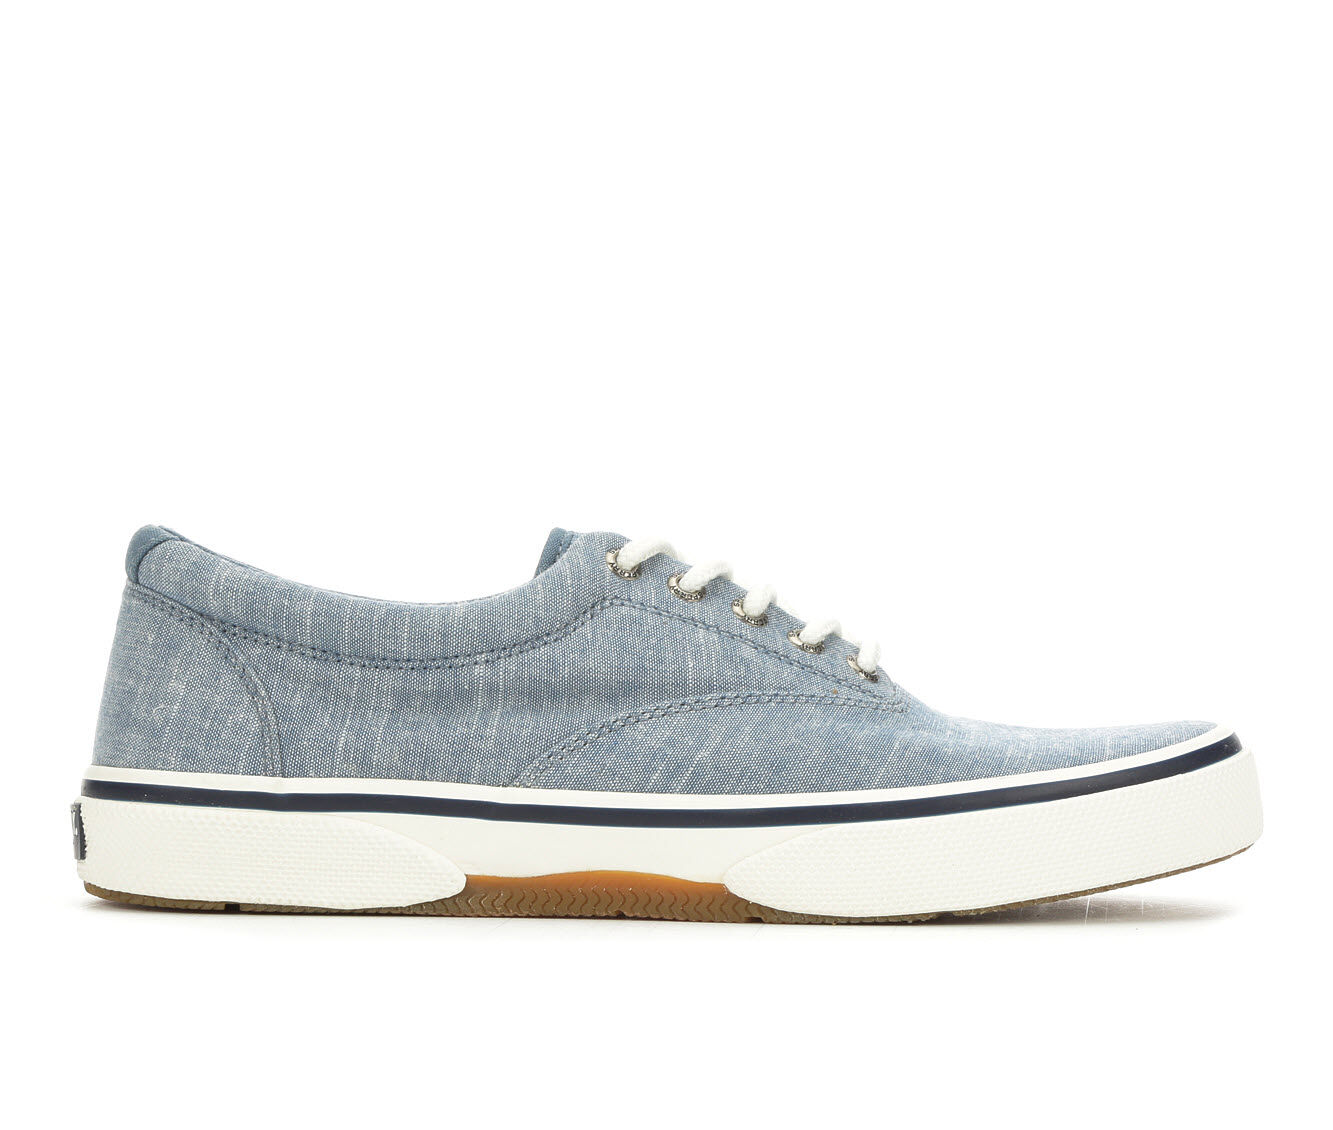 Men's Sperry Halyard Laceless Casual Shoes Navy Chambray